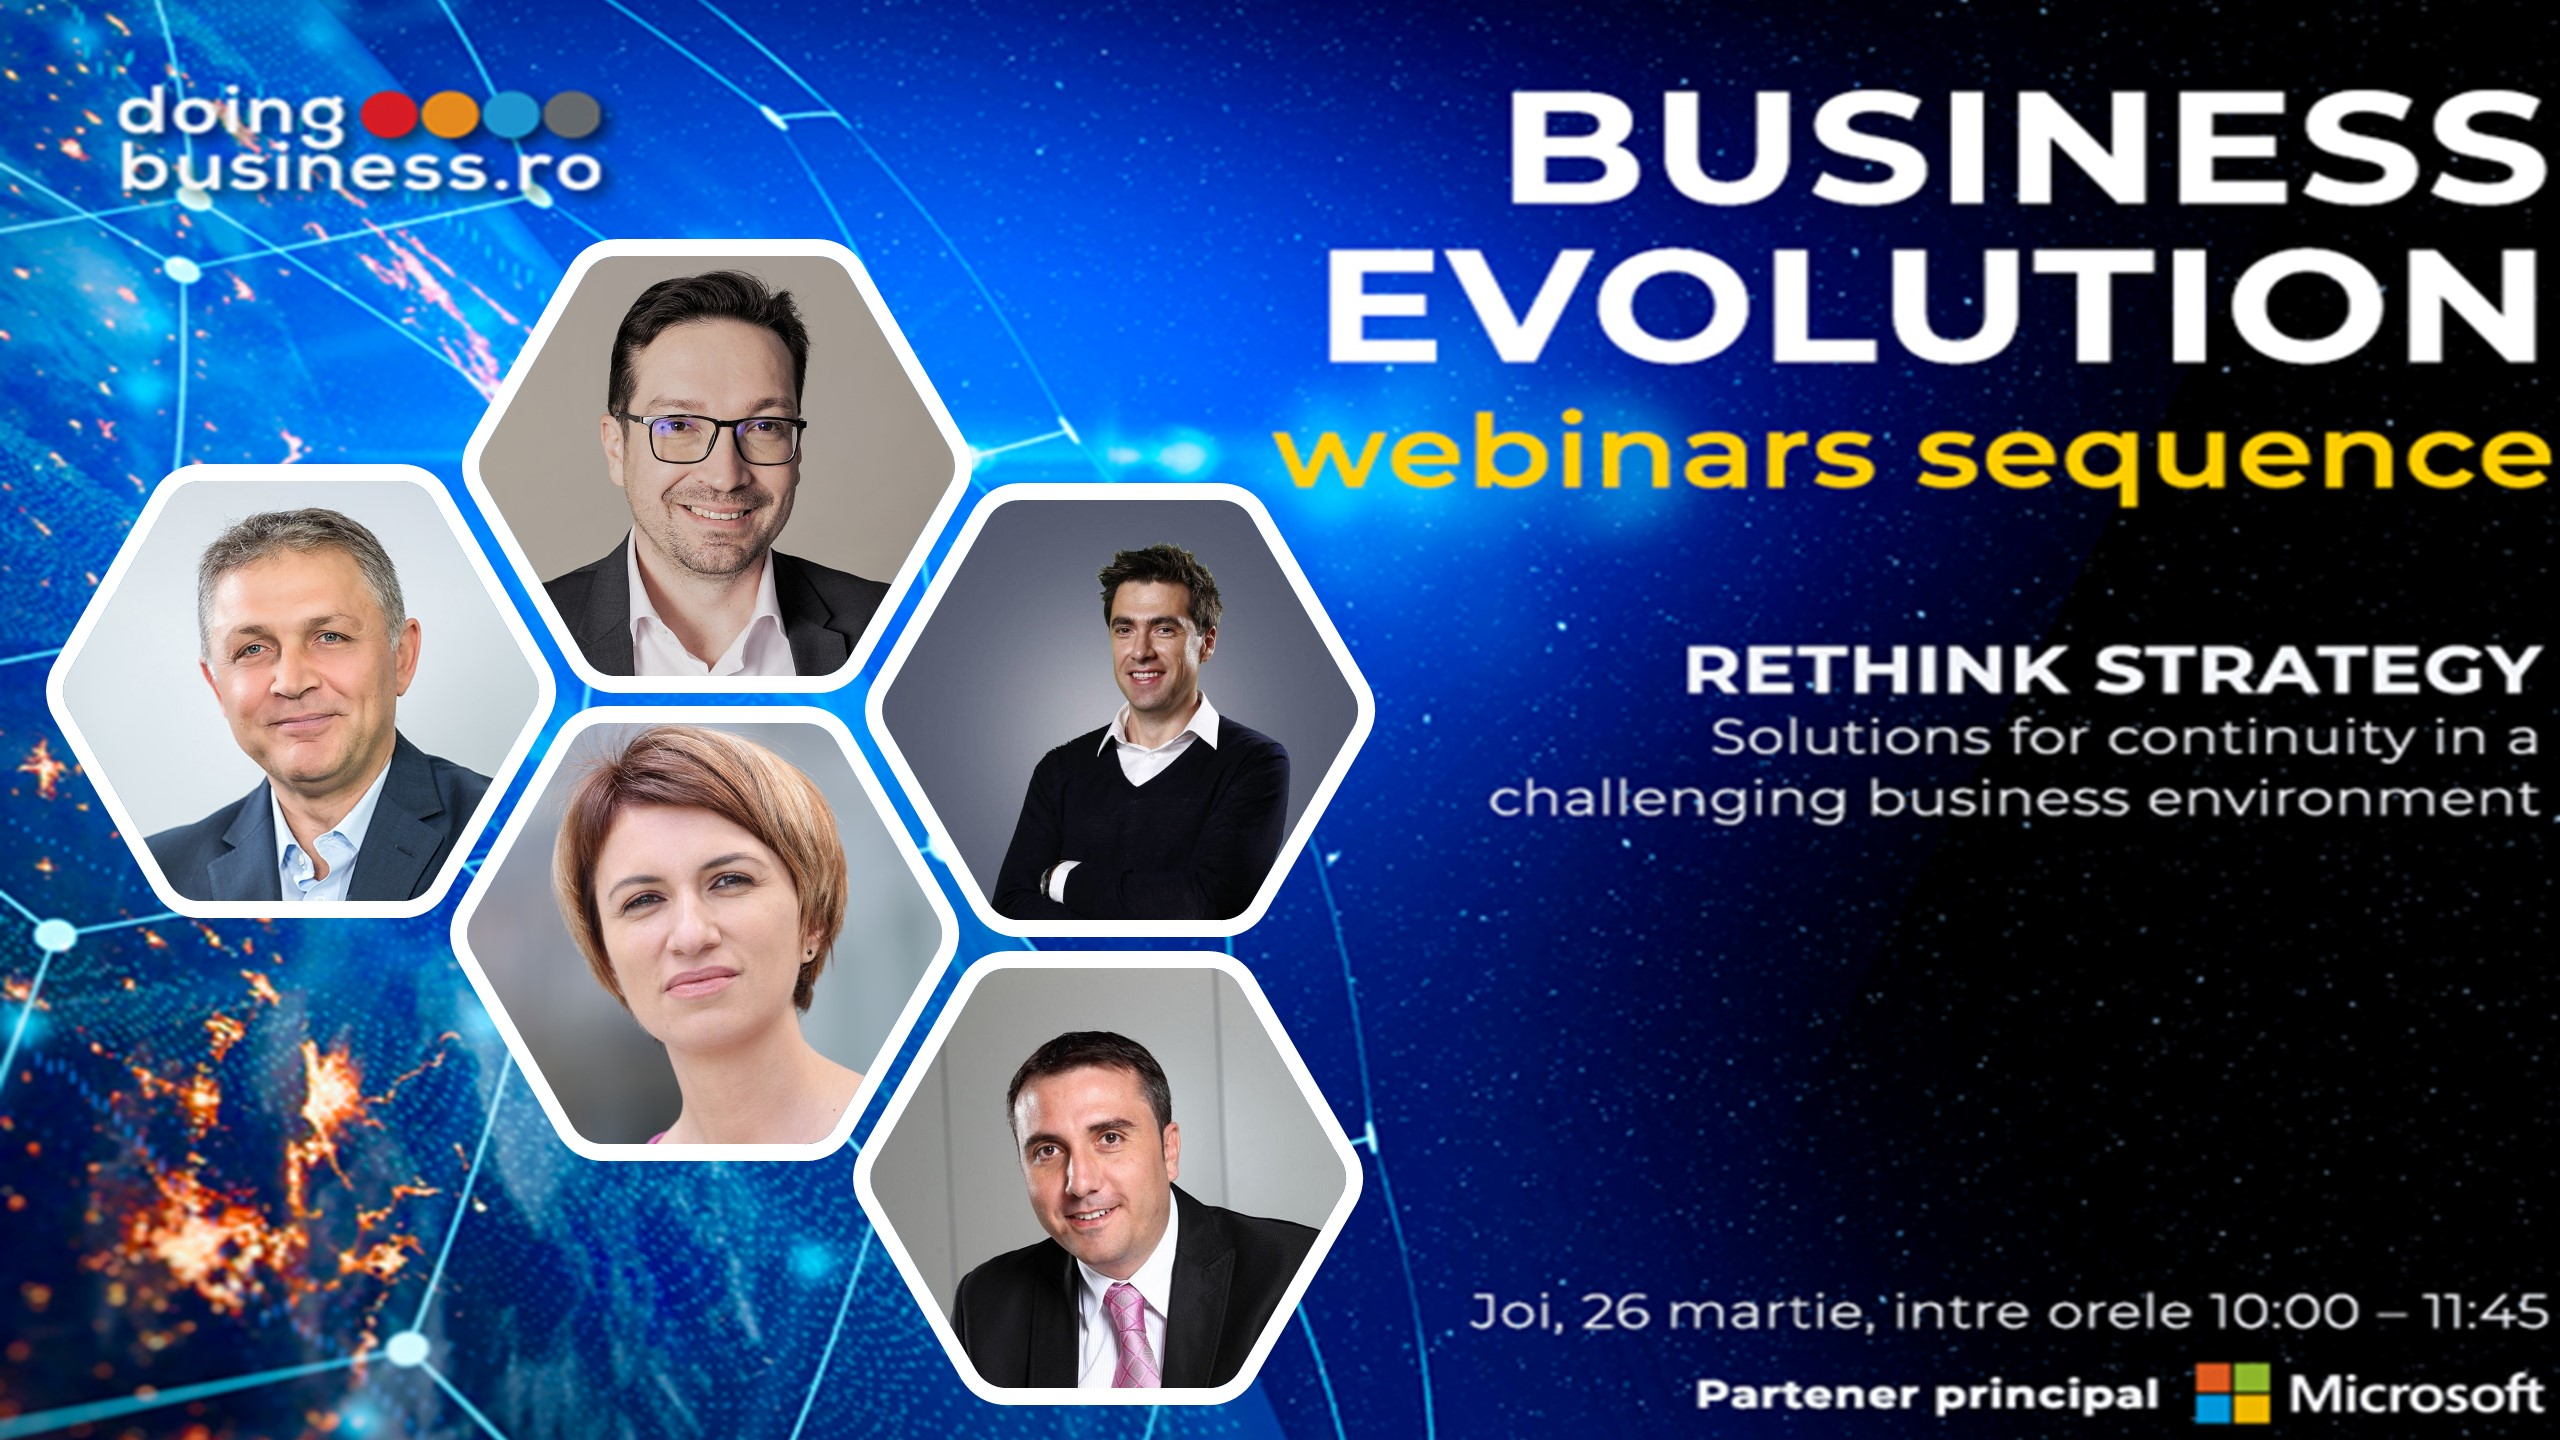 WEBINAR- Rethink Strategy – Continuity, Challenges and Opportunities